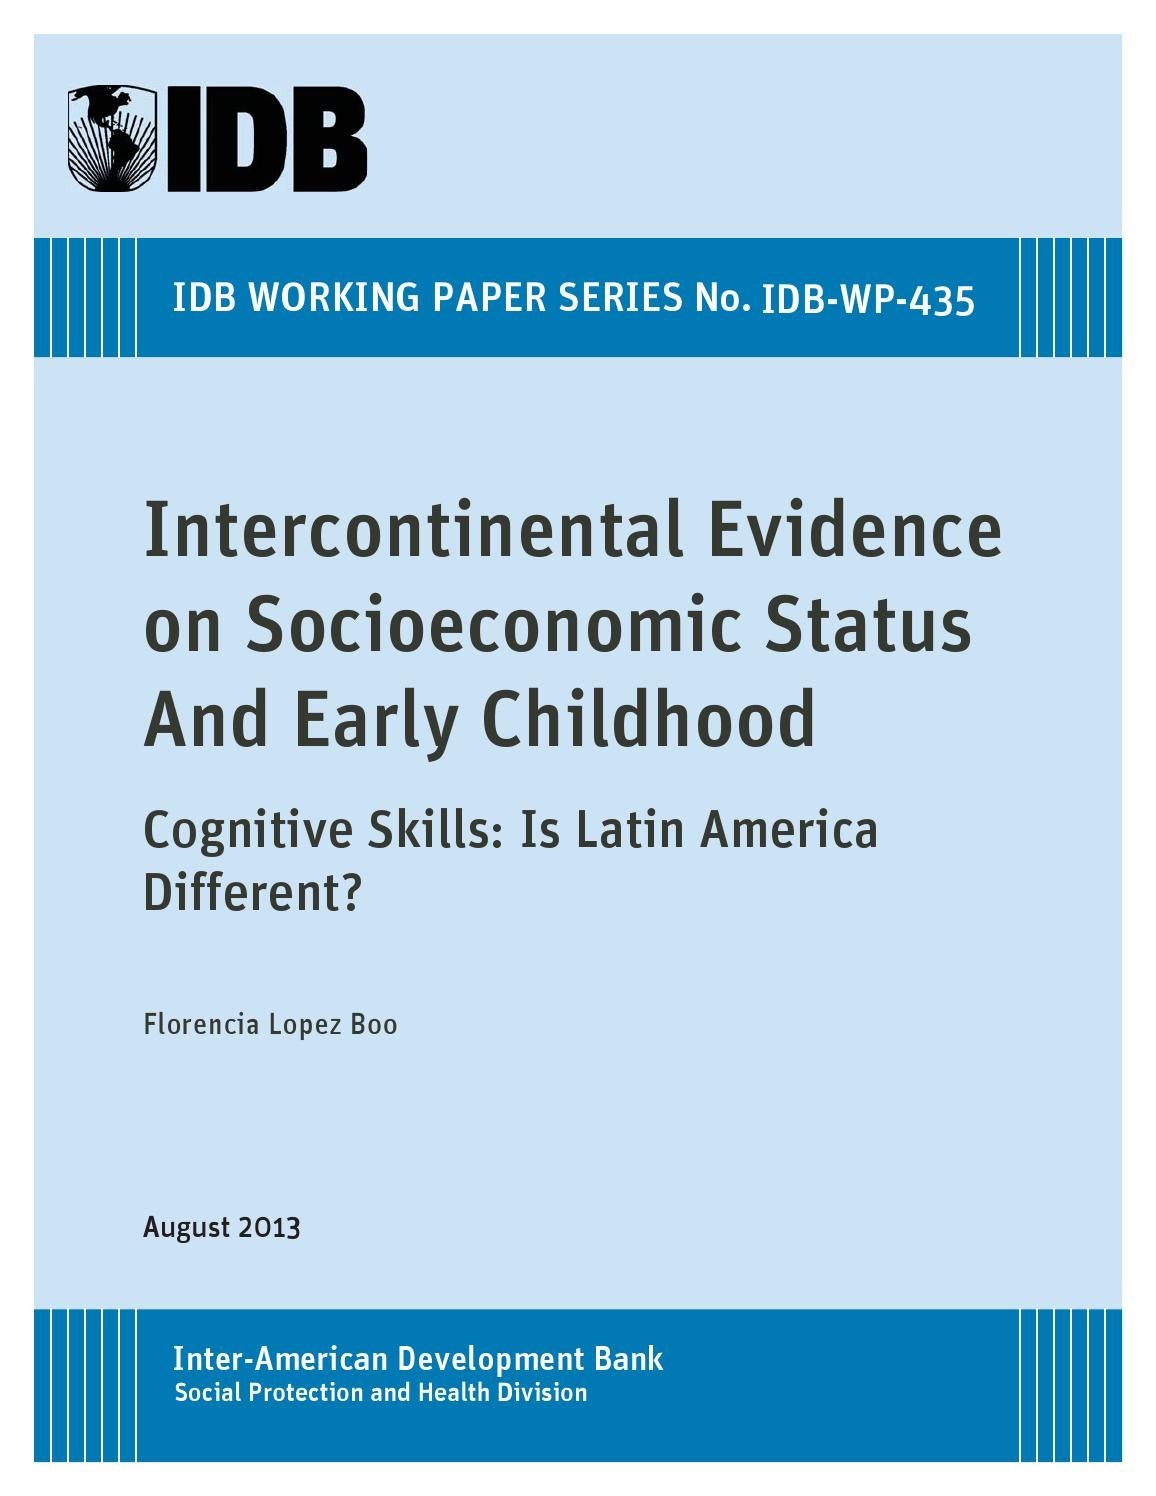 intercontinental evidence on socioeconomic status and early